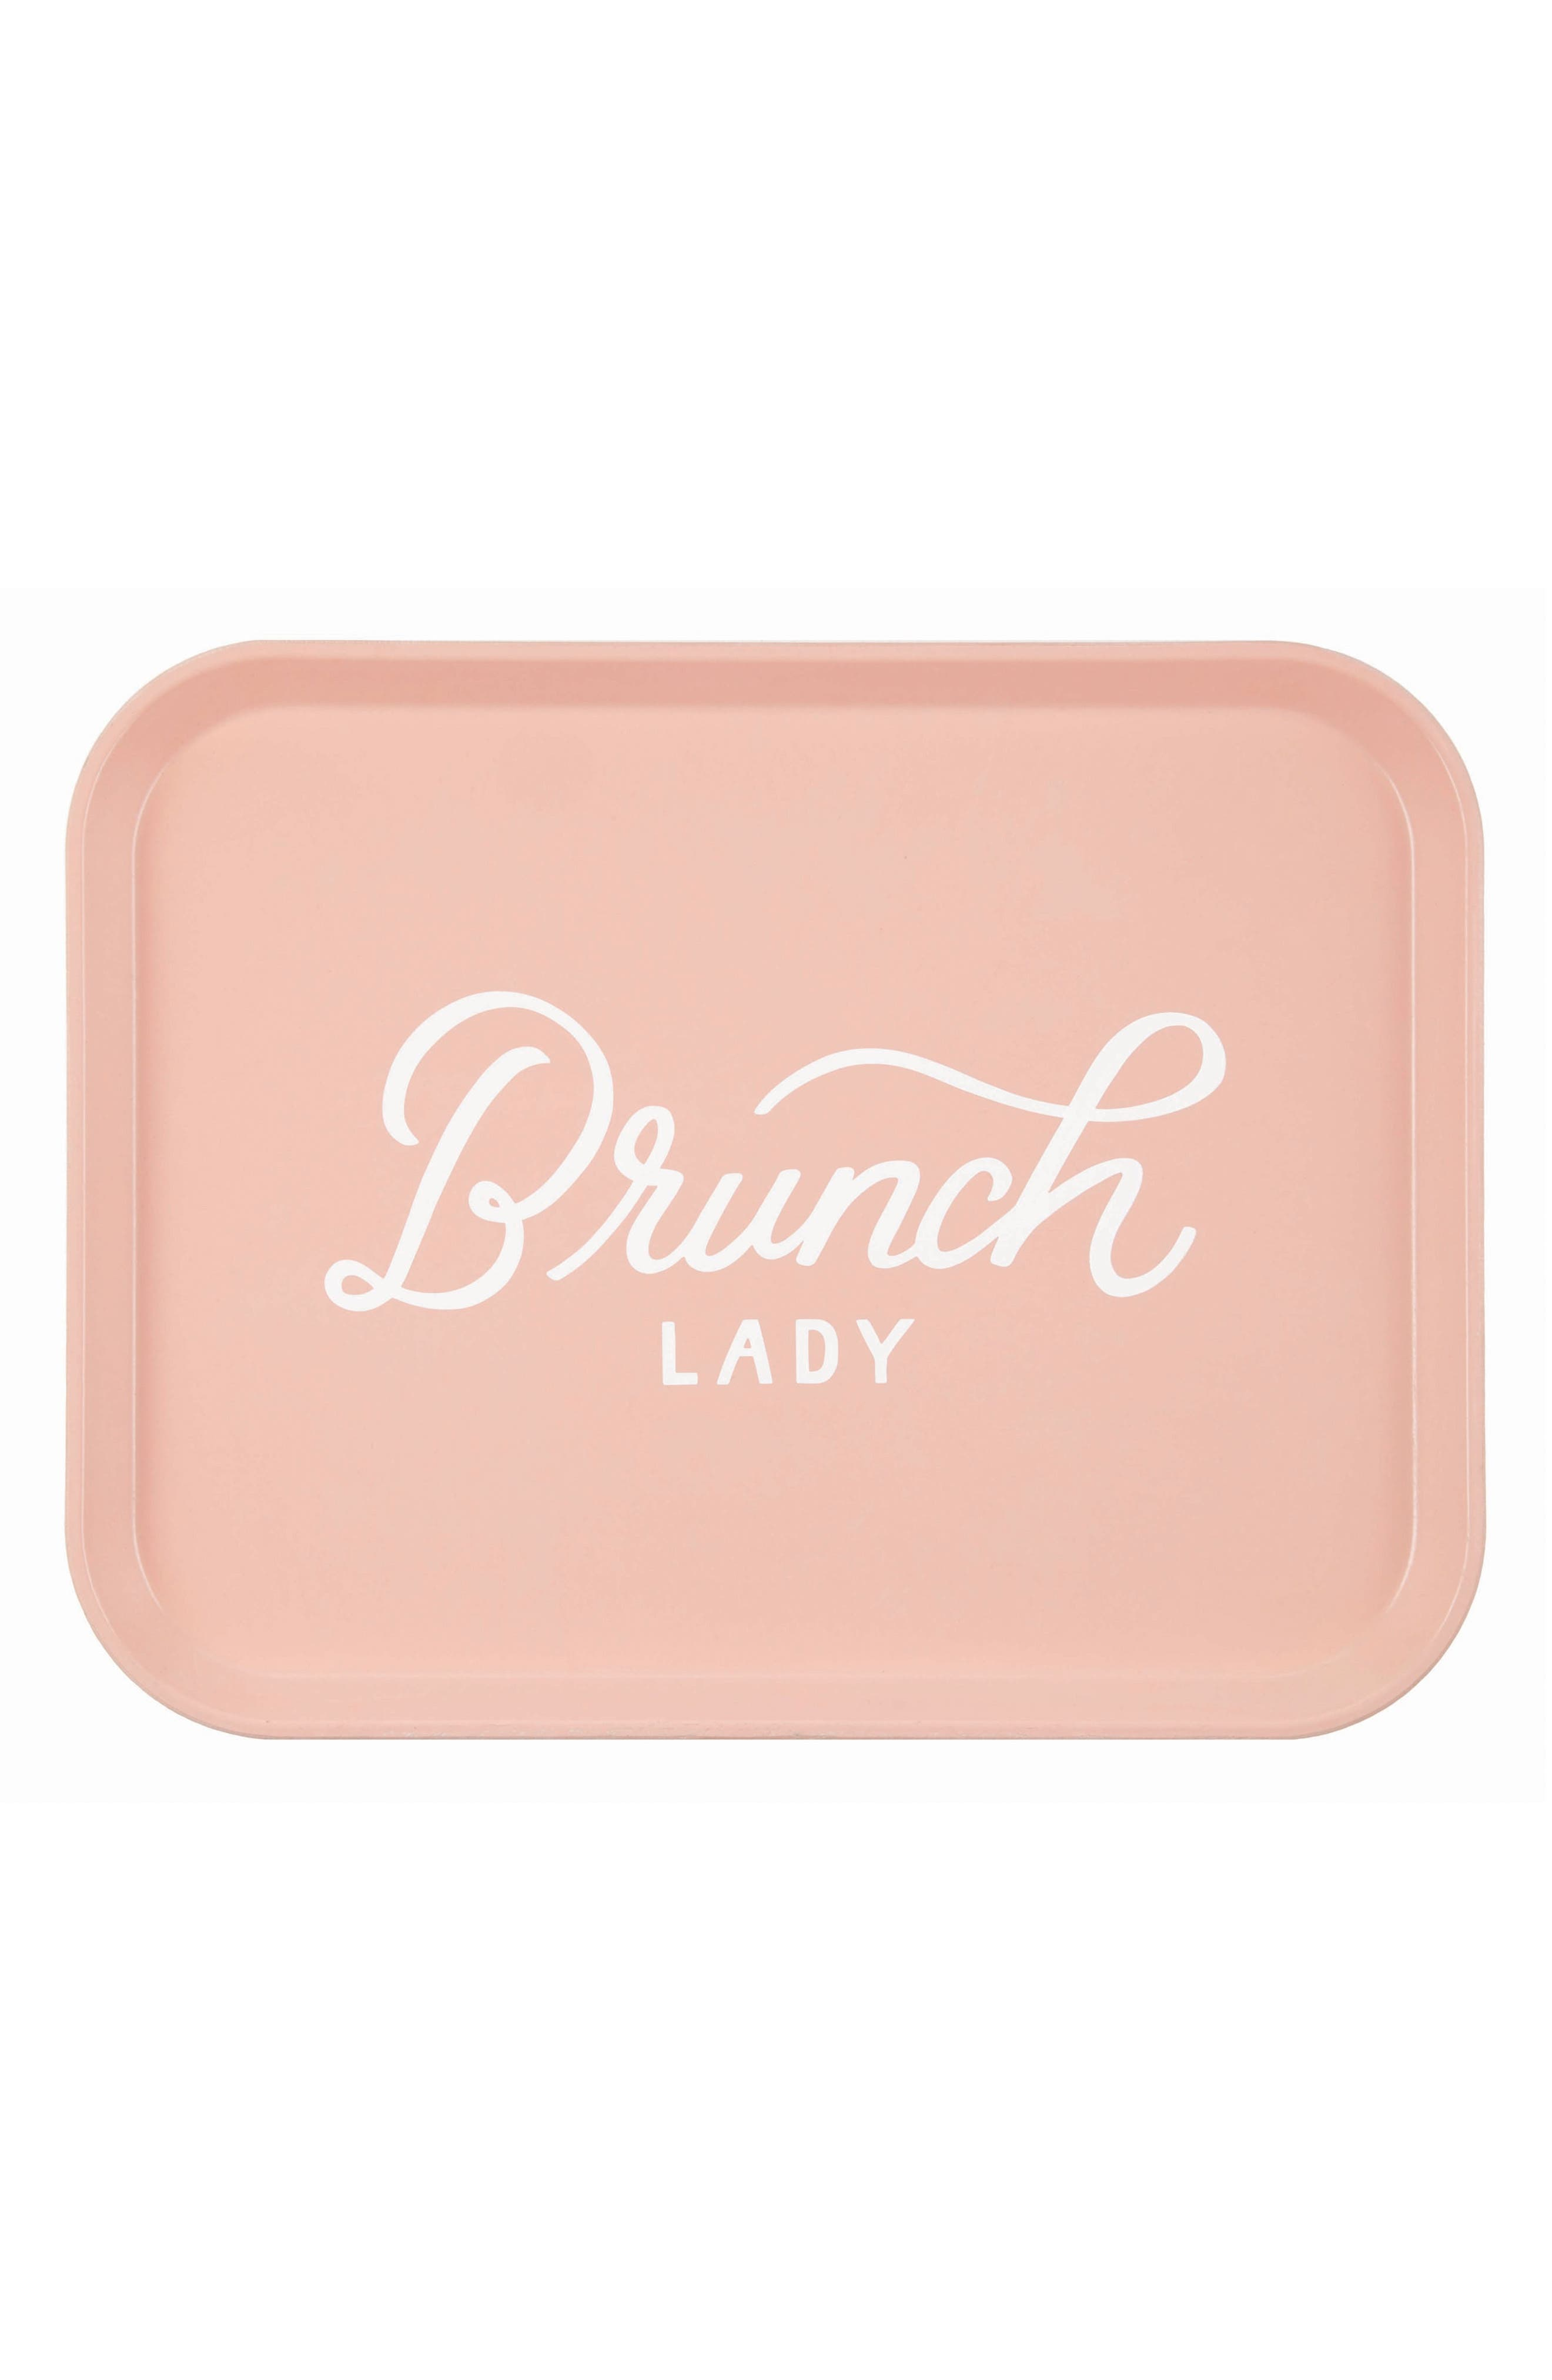 Easy, Tiger Brunch Lady Tray